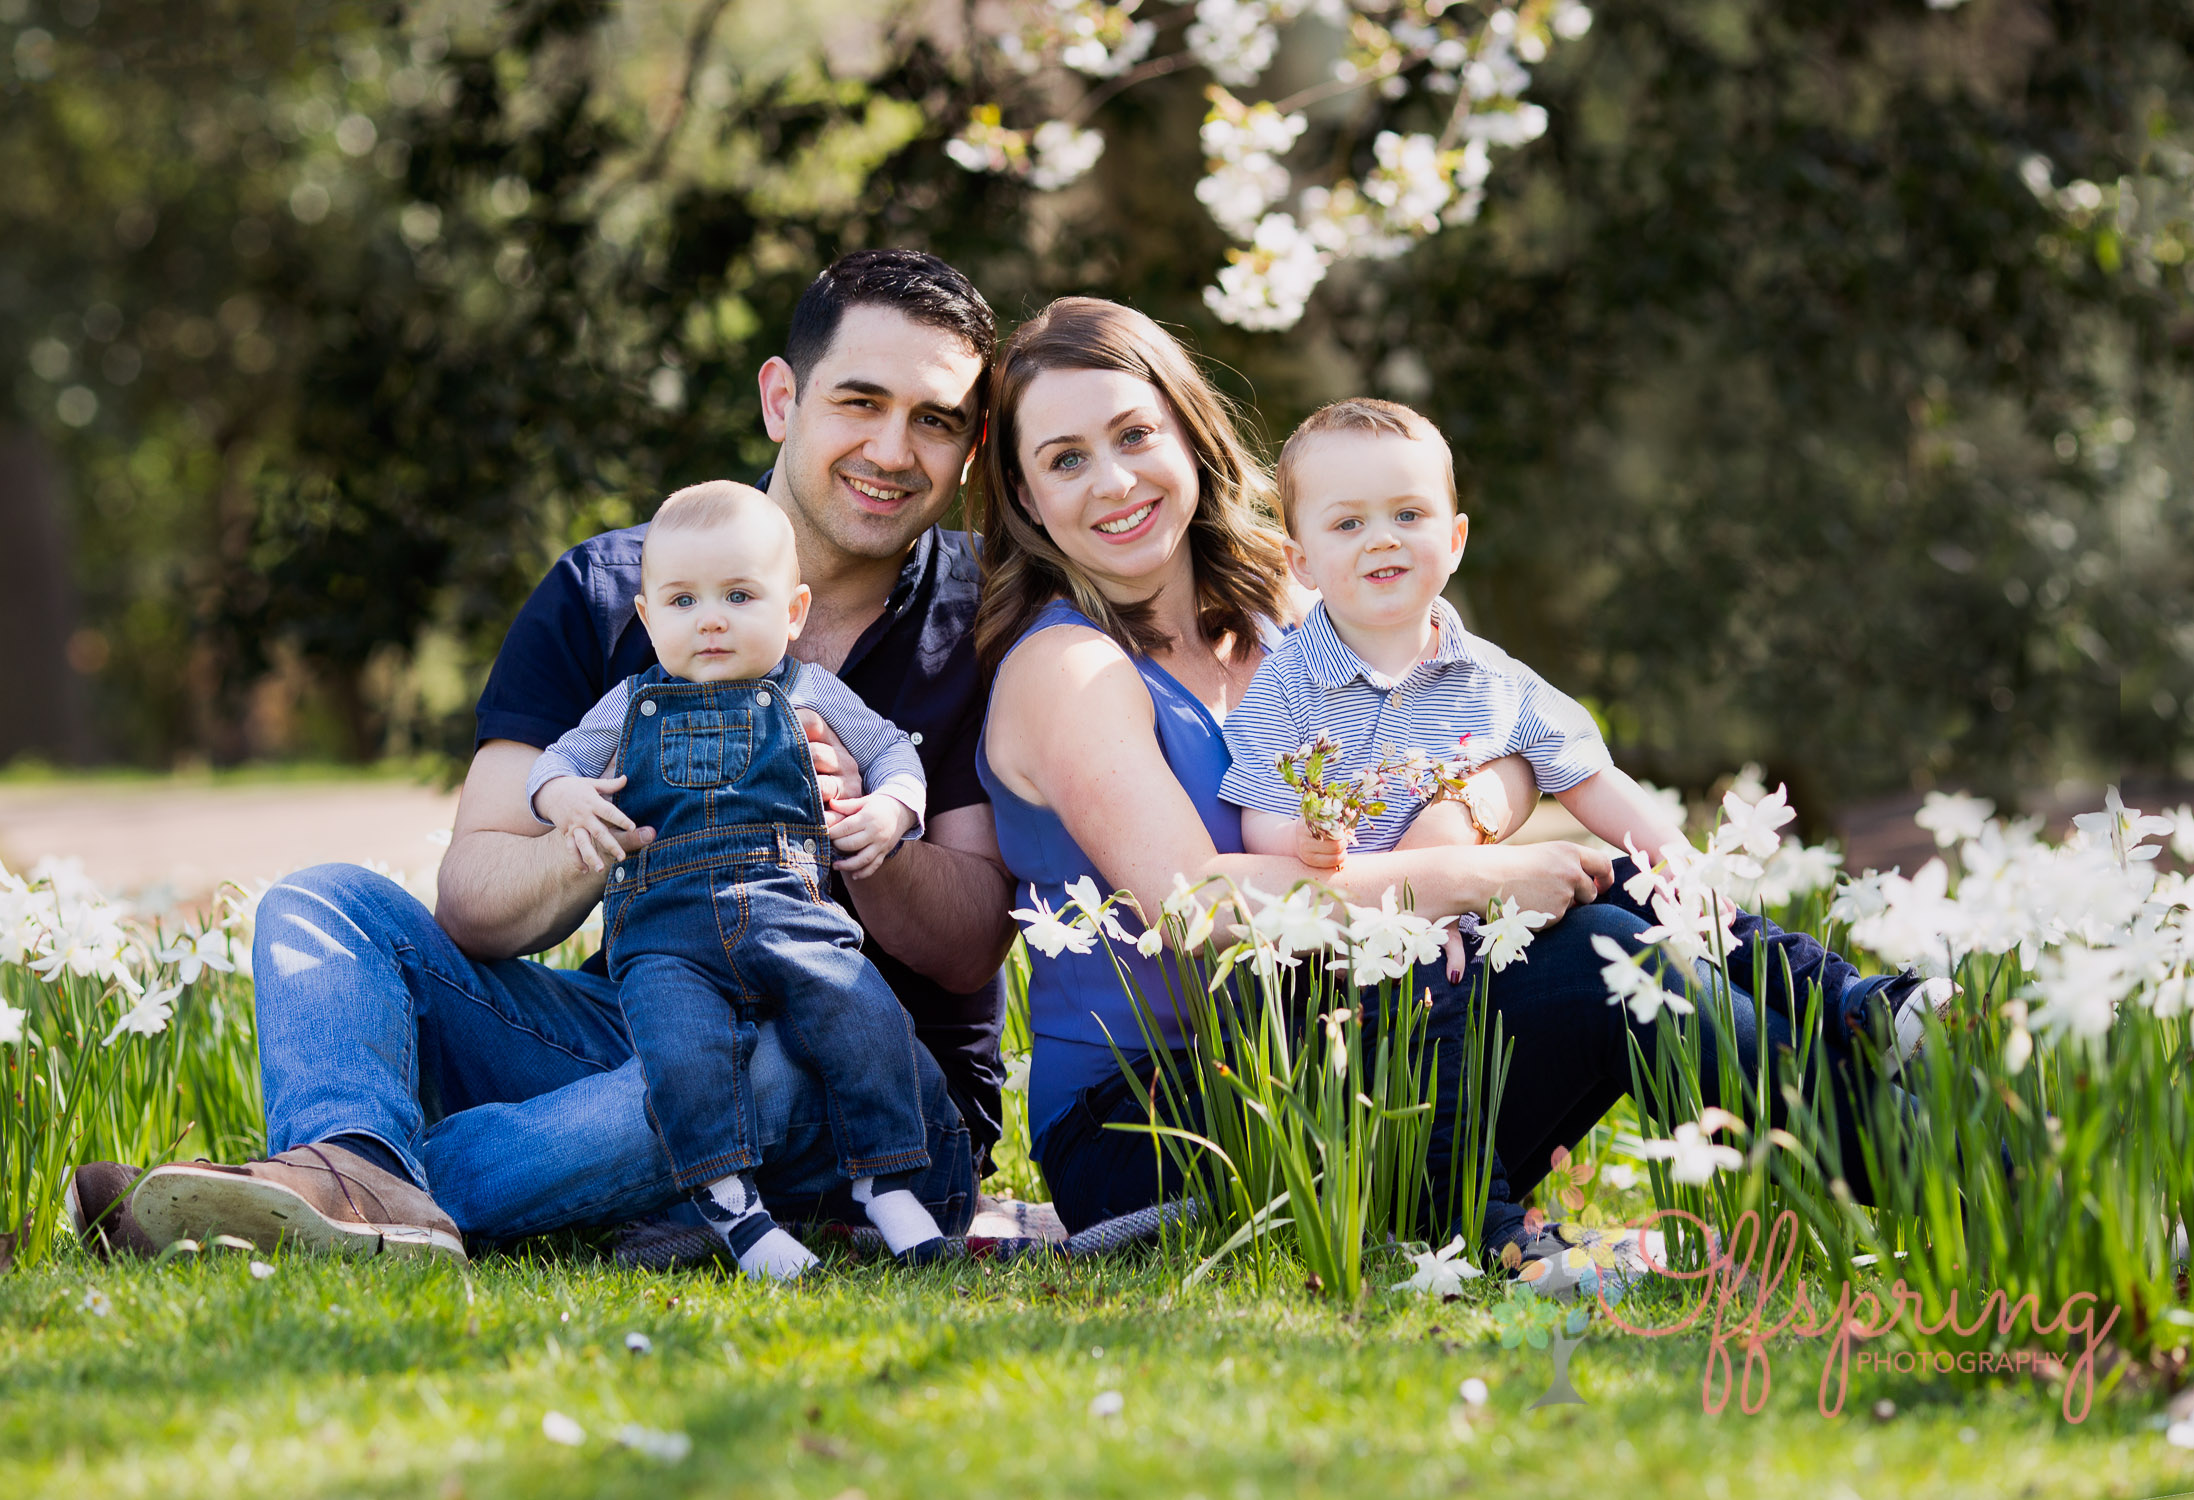 family in spring flowers in Jephson Gardens Leamington Spa